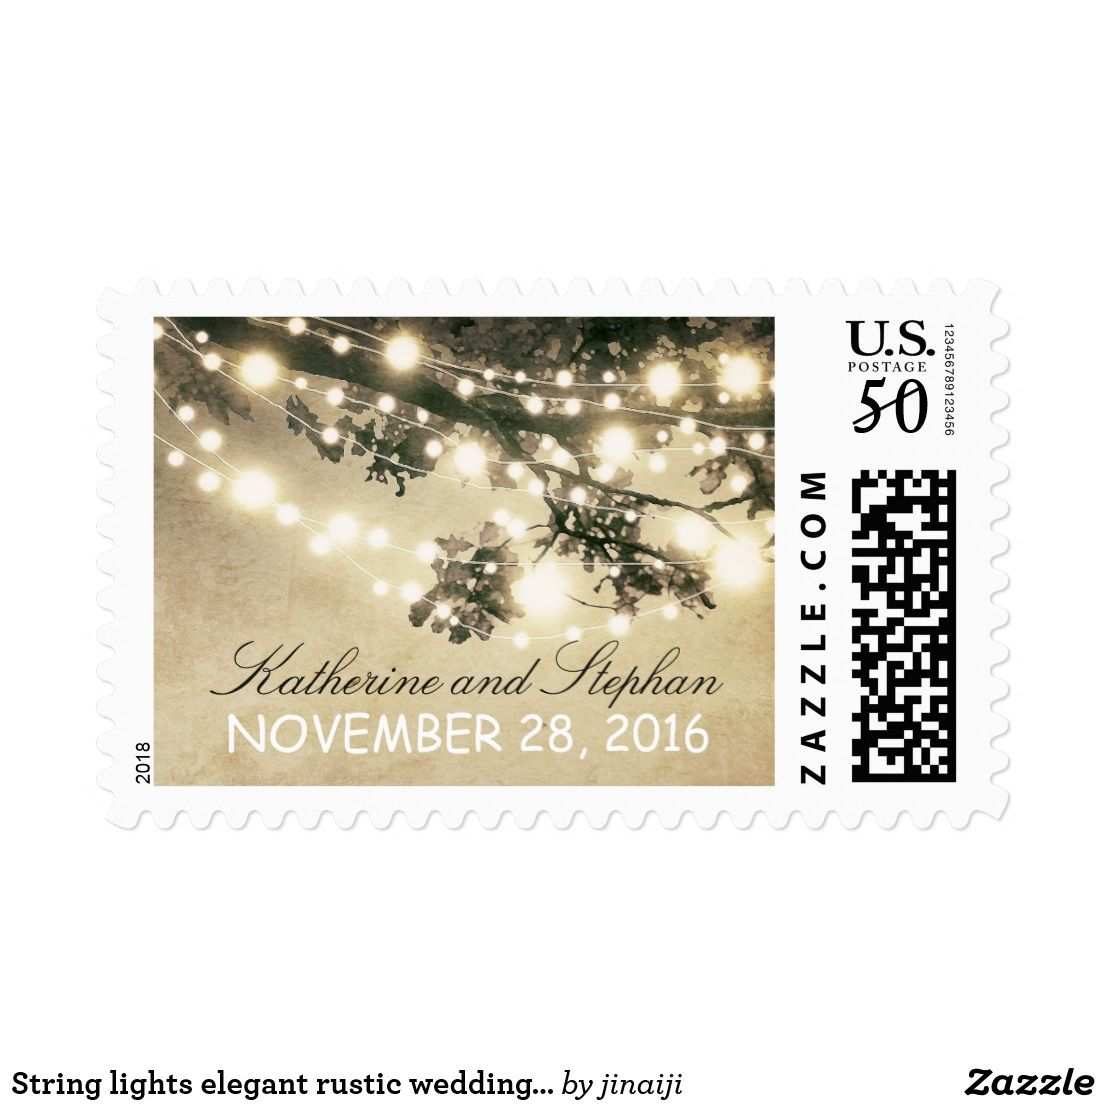 Wedding decorations with lights november 2018 String lights elegant rustic wedding postage stamp Rustic country